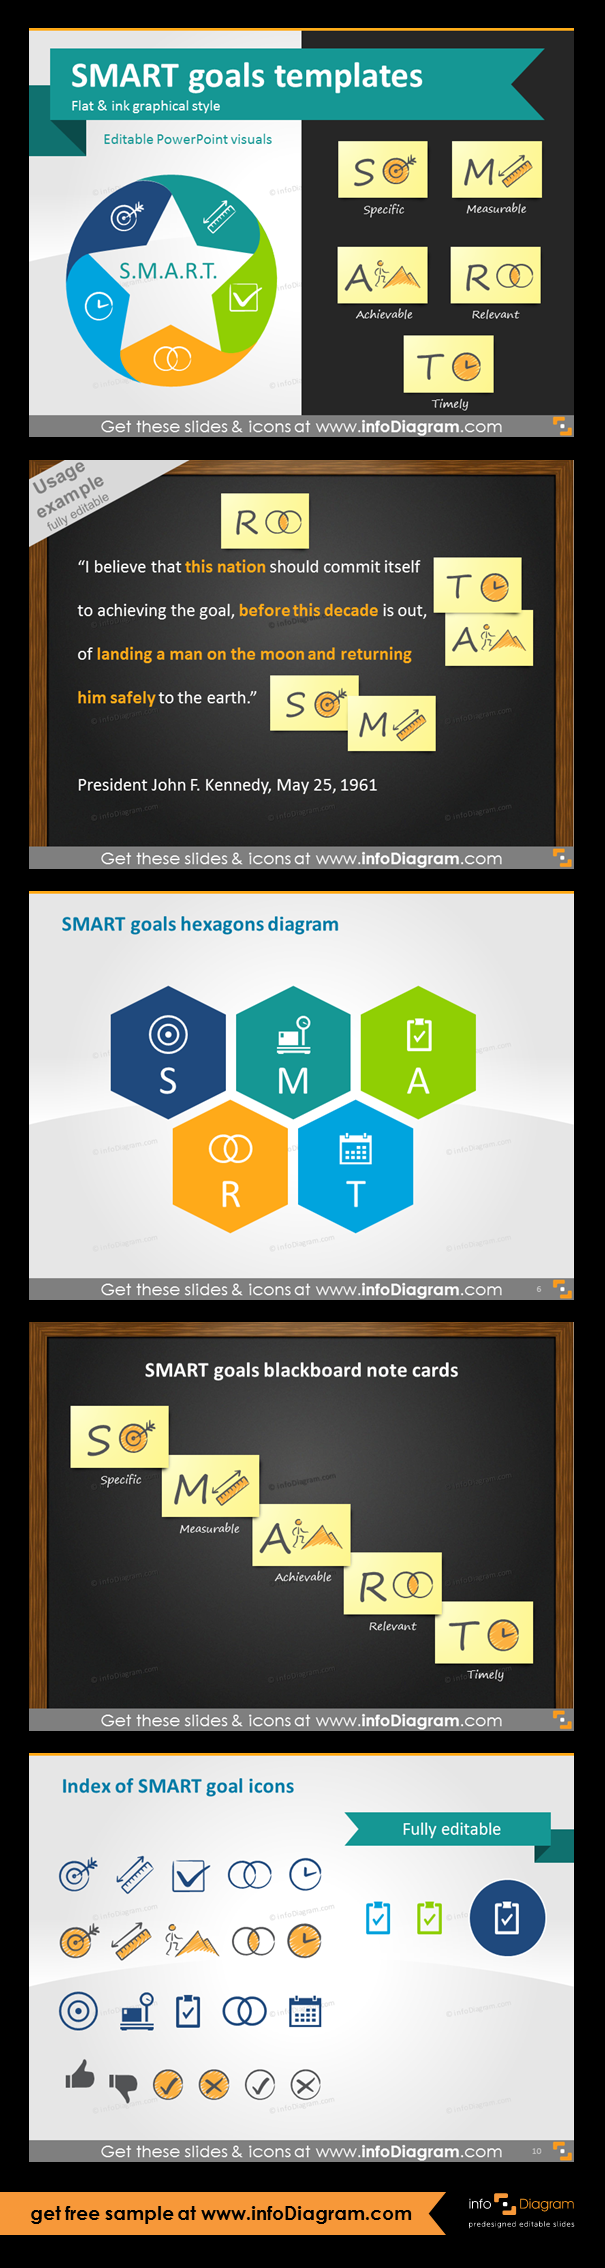 Smart Goals Template Ppt Diagrams Strategy And Management Employee Setting Graphics For Business Presentations Are Used In Project Hr Increasing Performance